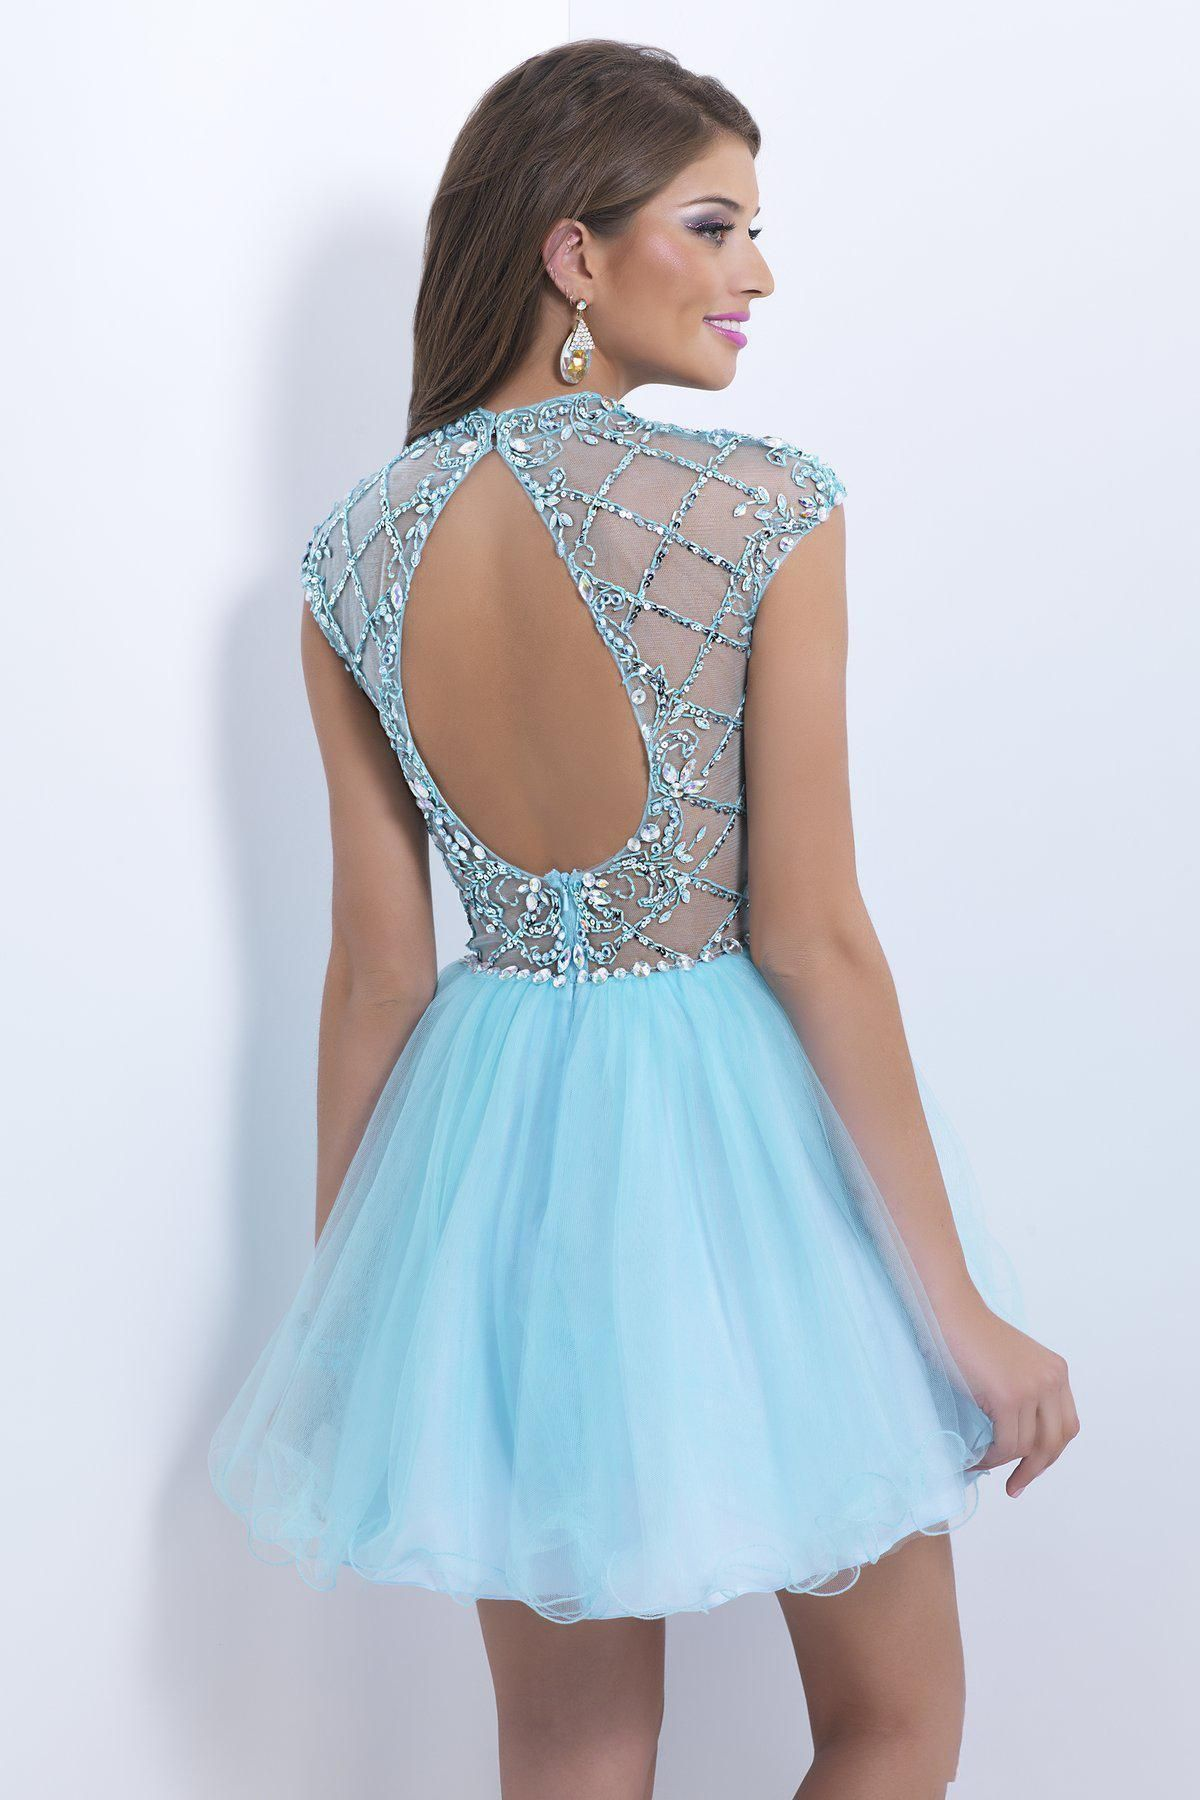 Th grade prom dresses fashion in pinterest prom fancy